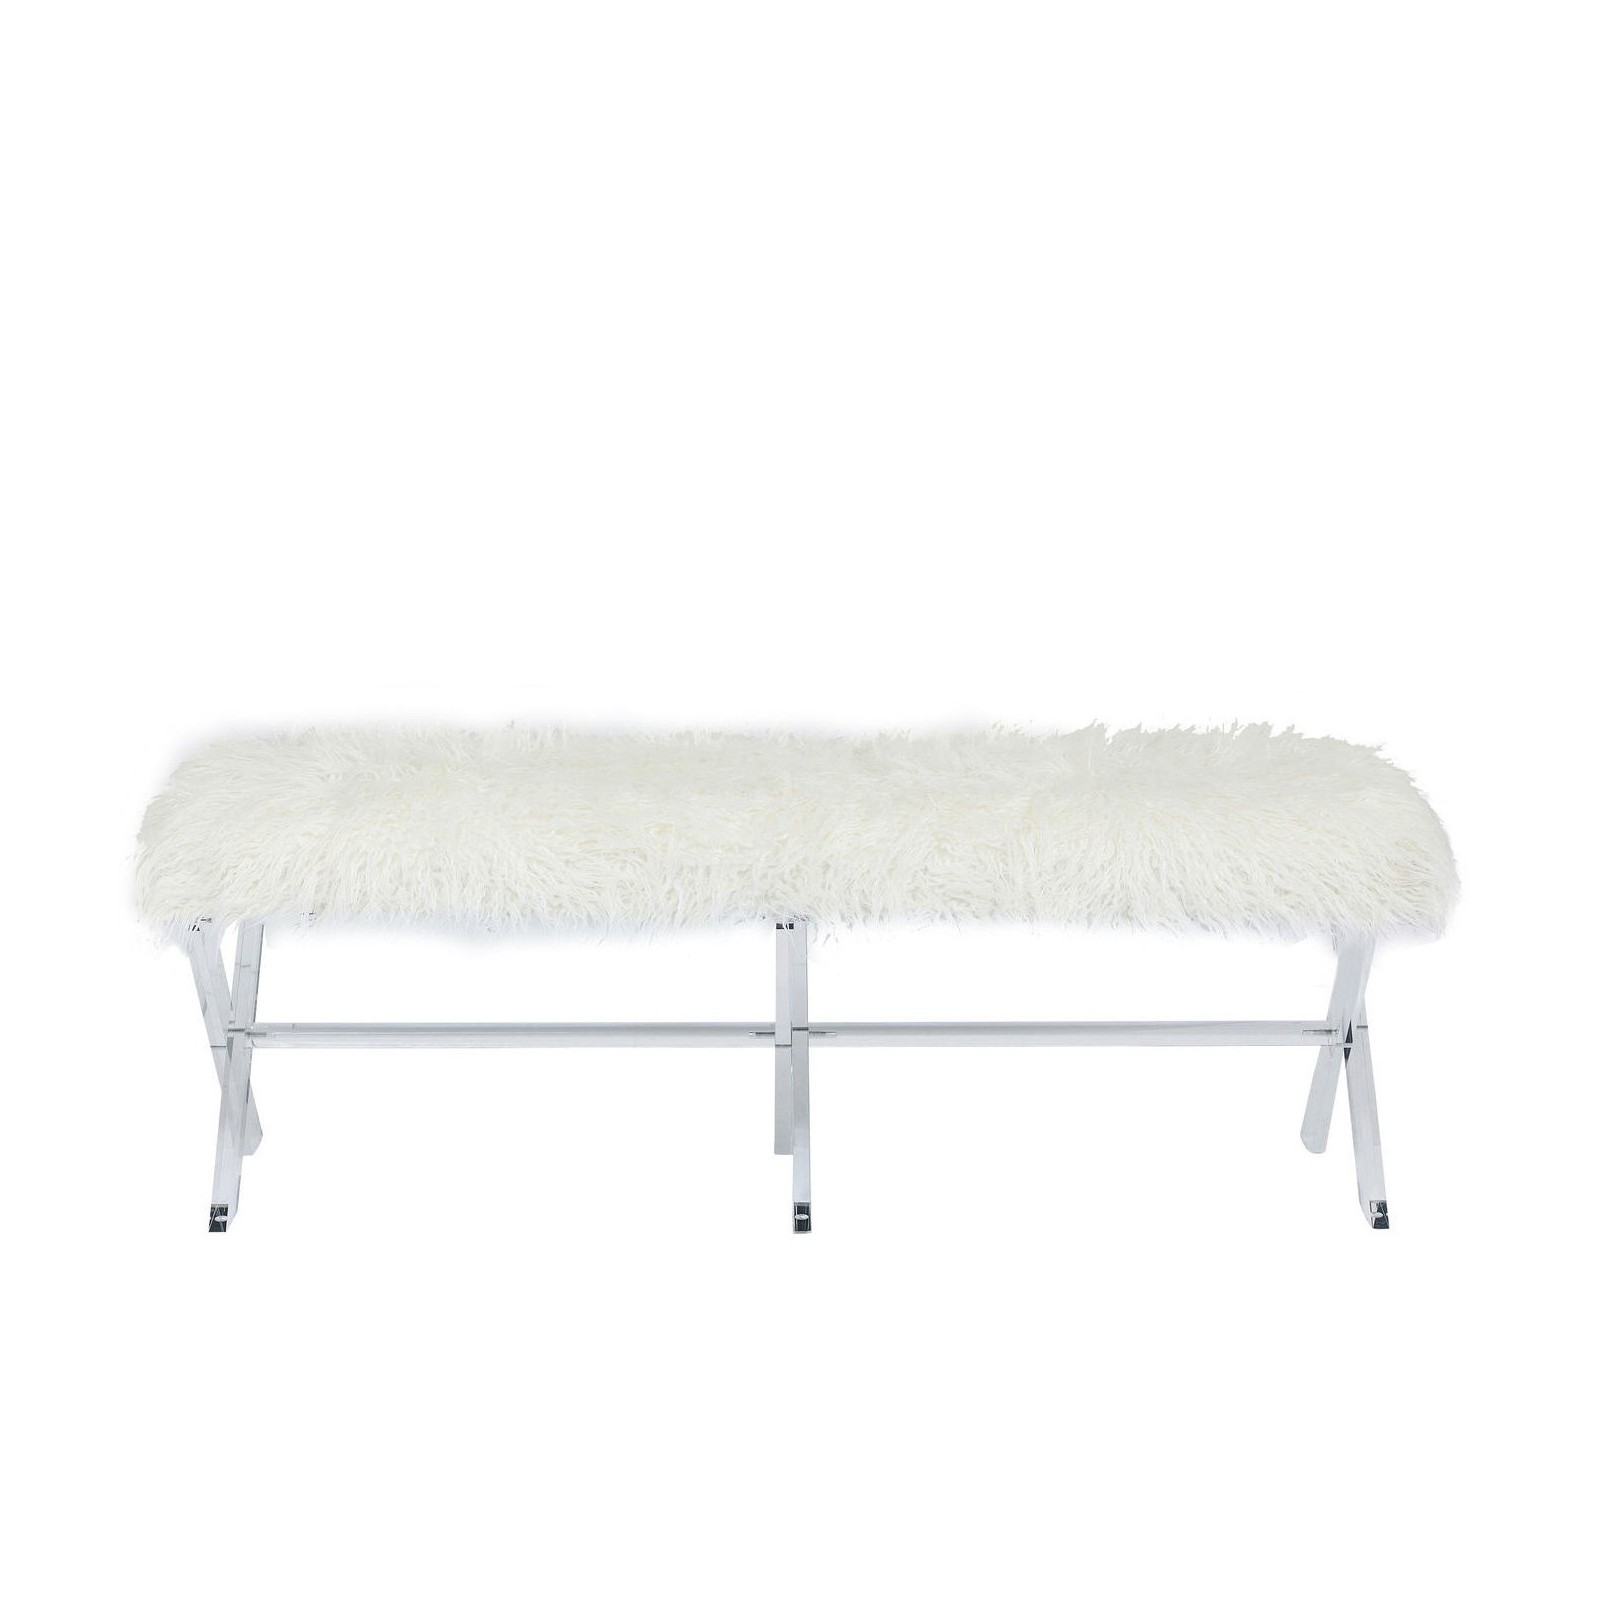 banc contemporain en fausse fourrure blanche visible fur. Black Bedroom Furniture Sets. Home Design Ideas